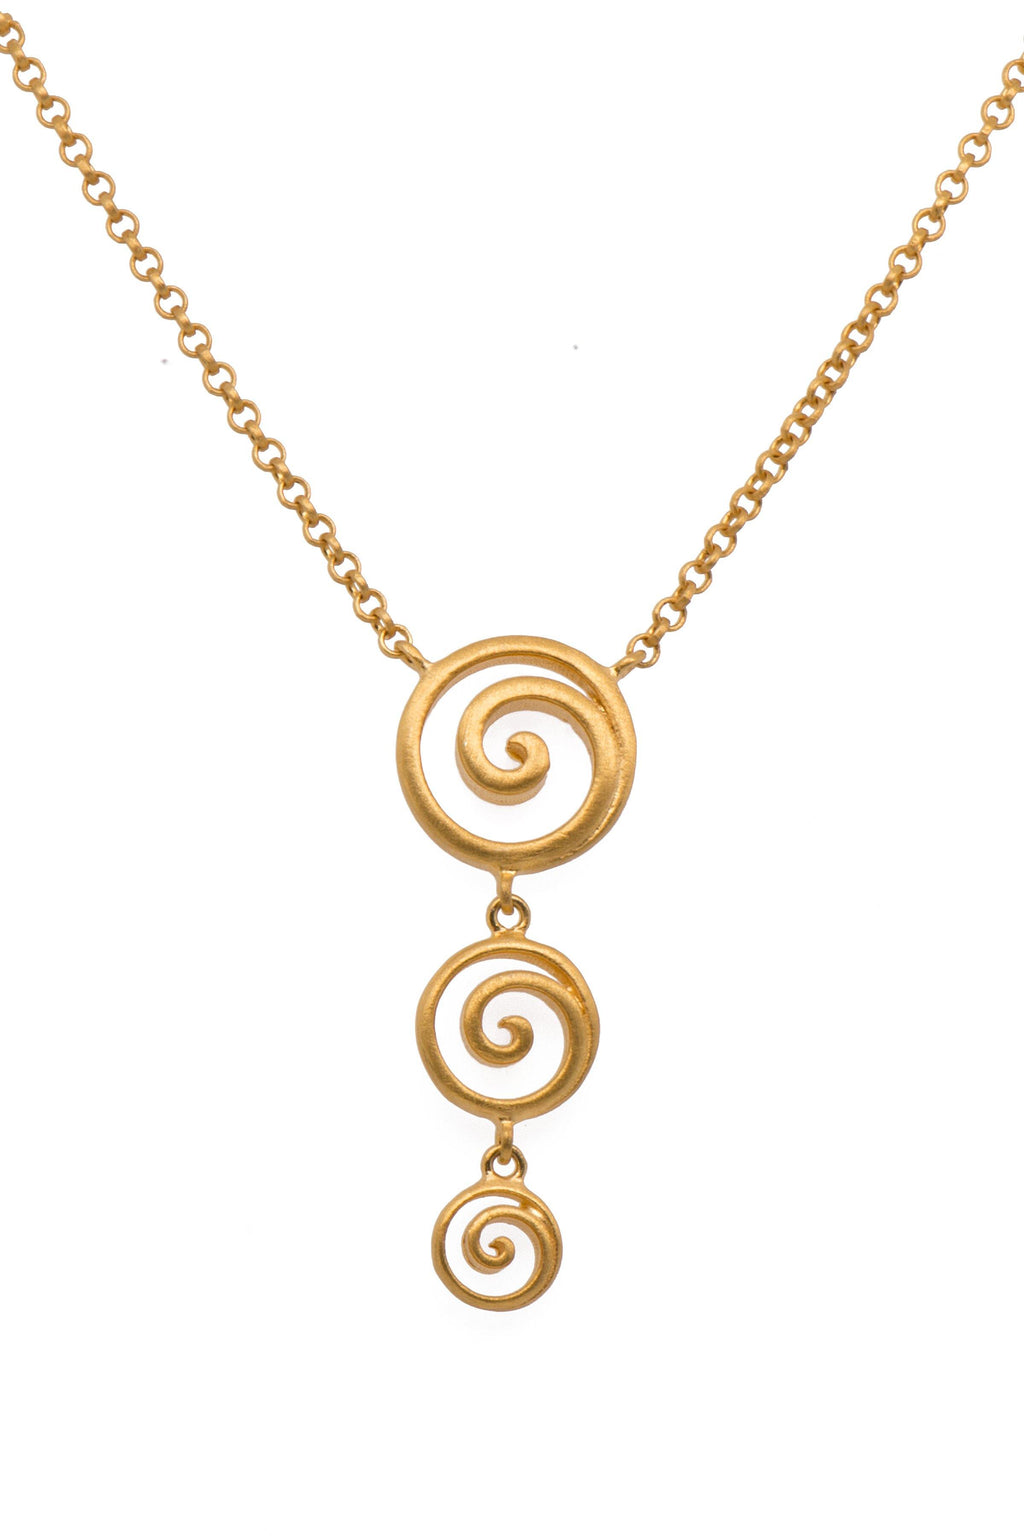 GRATITUDE TRIPLE SWIRL NECKLACE